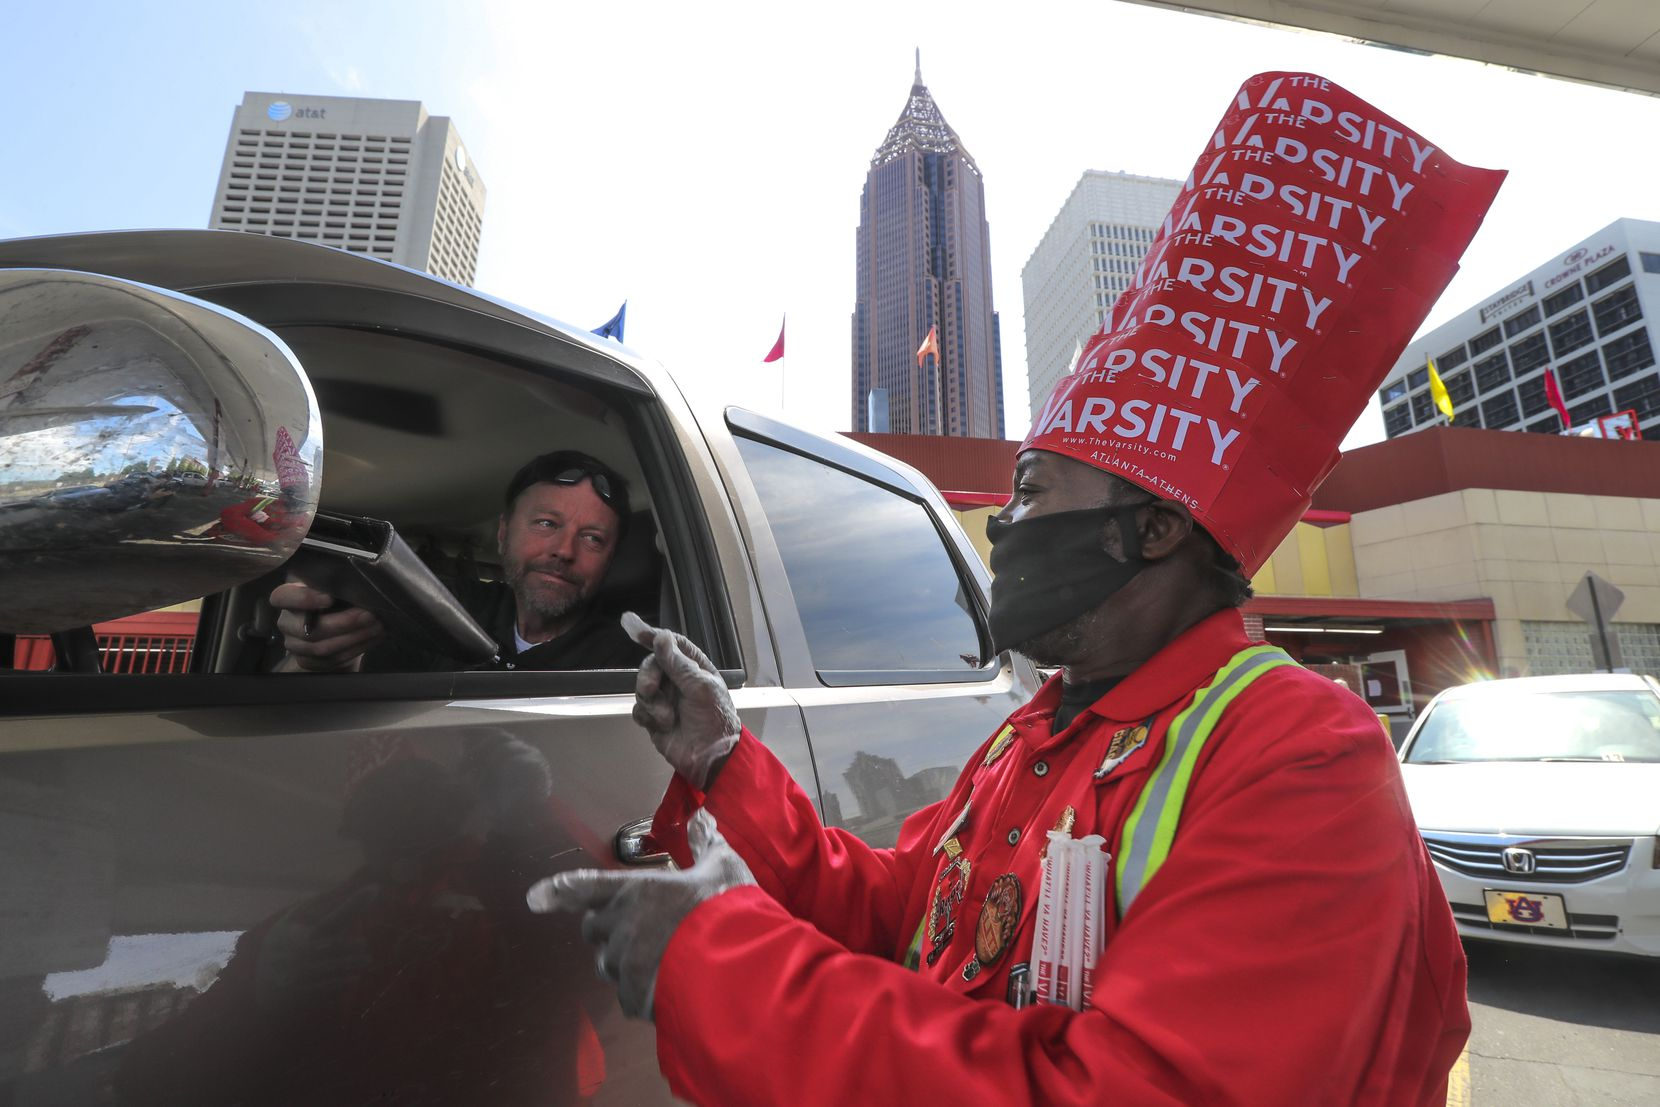 Customer Dave Williams handed over his signed bill to Fred Stewart on April 28, 2020, at the Varsity restaurant in downtown Atlanta.